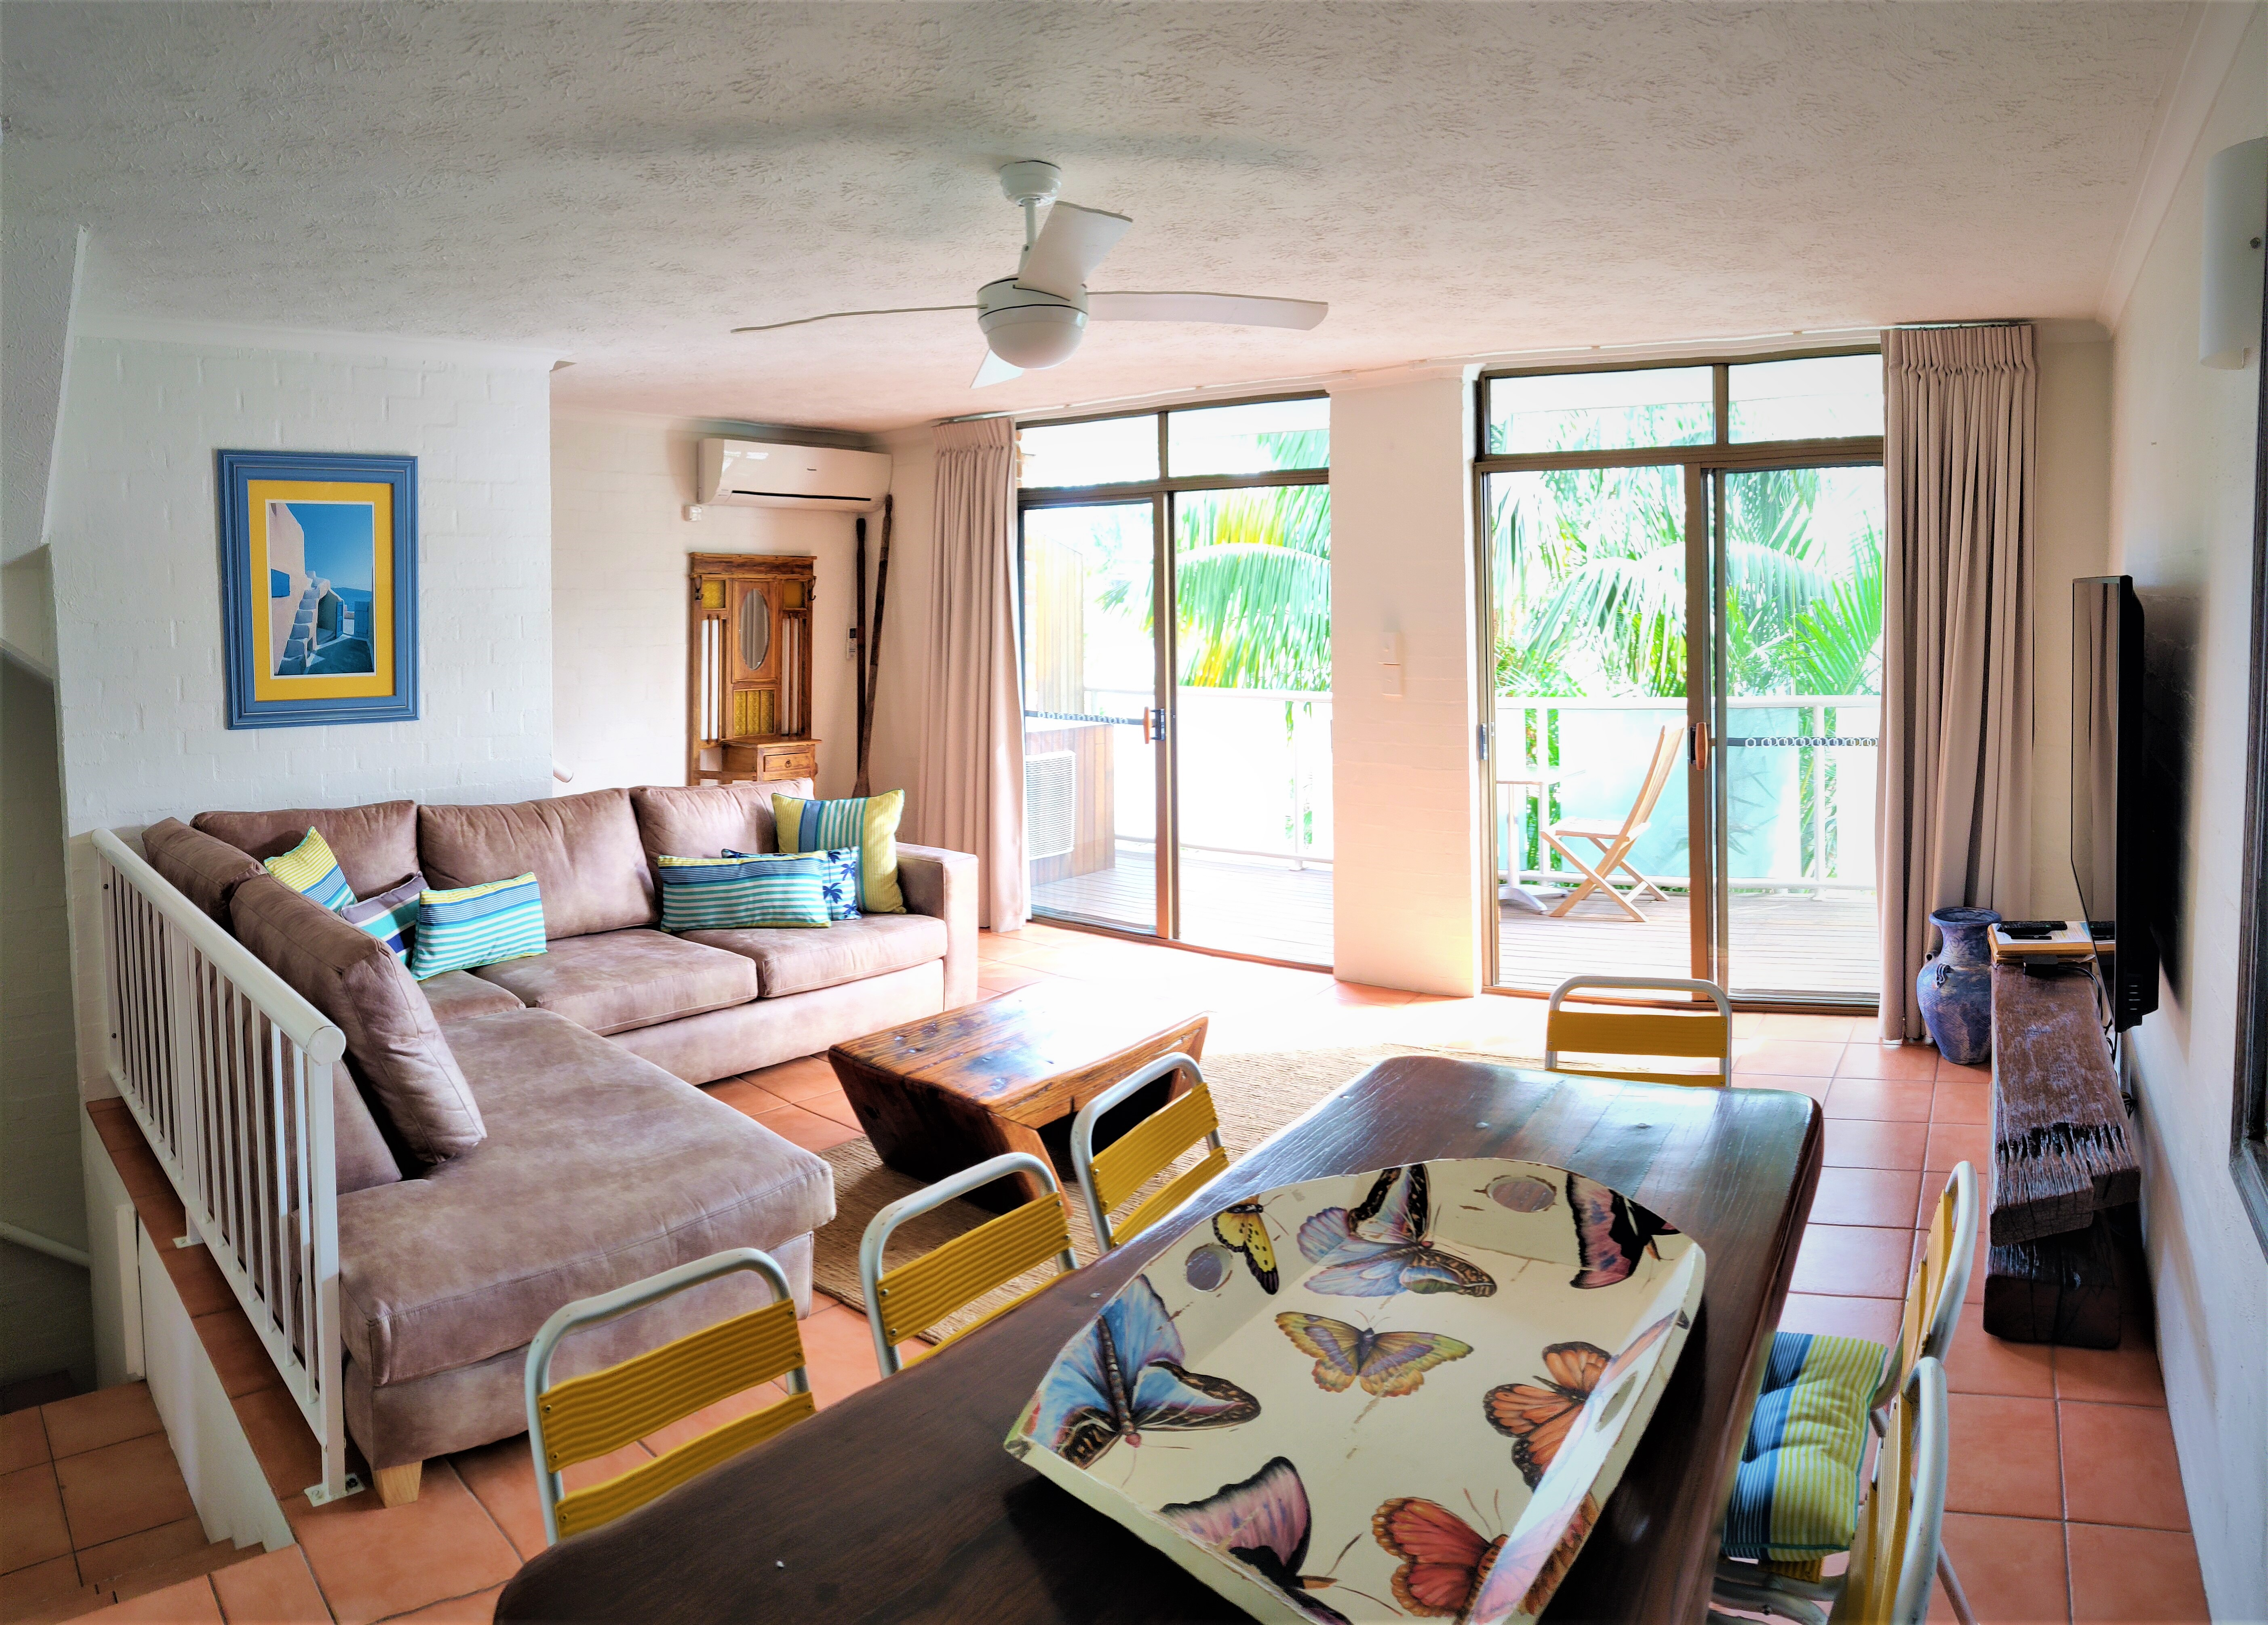 Accommodation in Byron Bay 2019 - Lounge Room Pana Edited 2